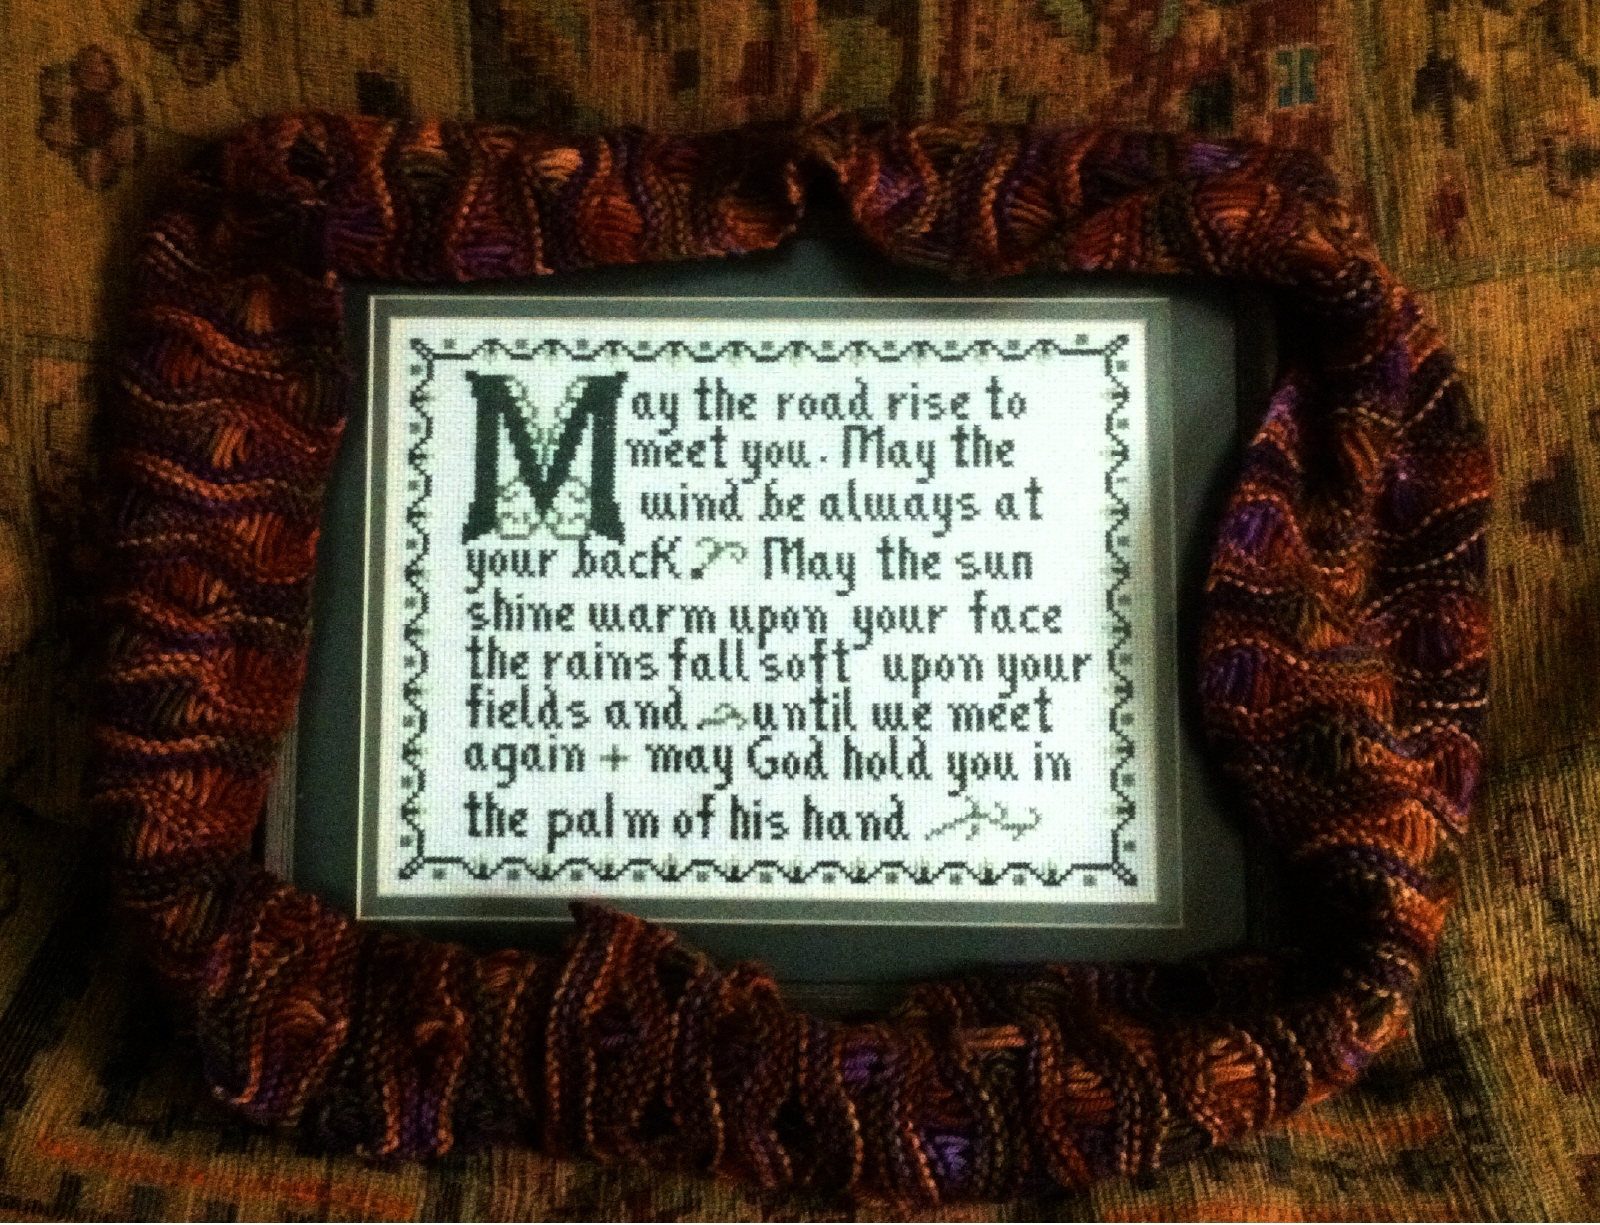 irish blessing may the wind rise to meet you